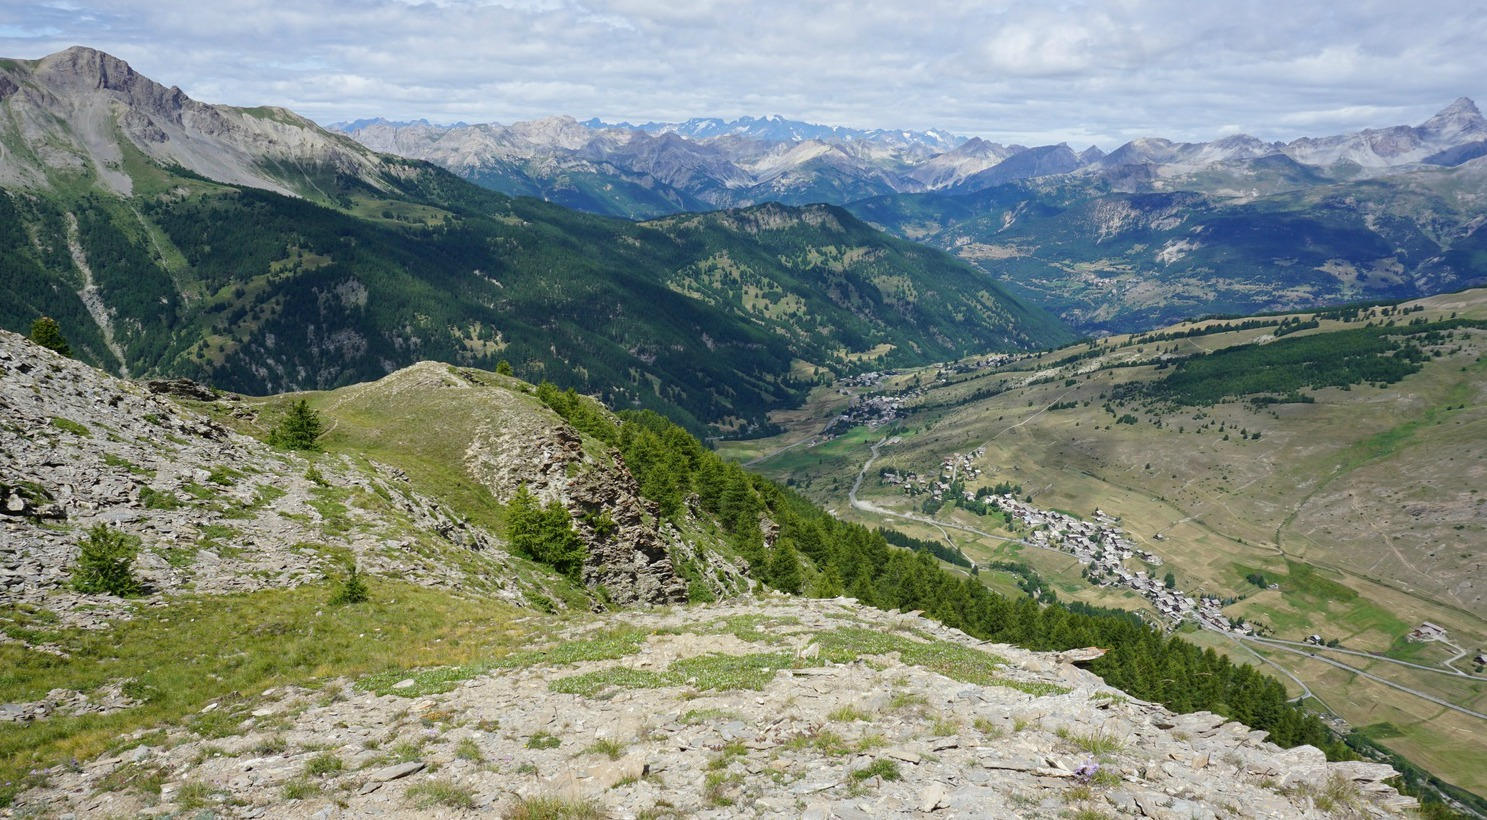 Molines en Queyras and Pierre Grosse seen from Beauregard